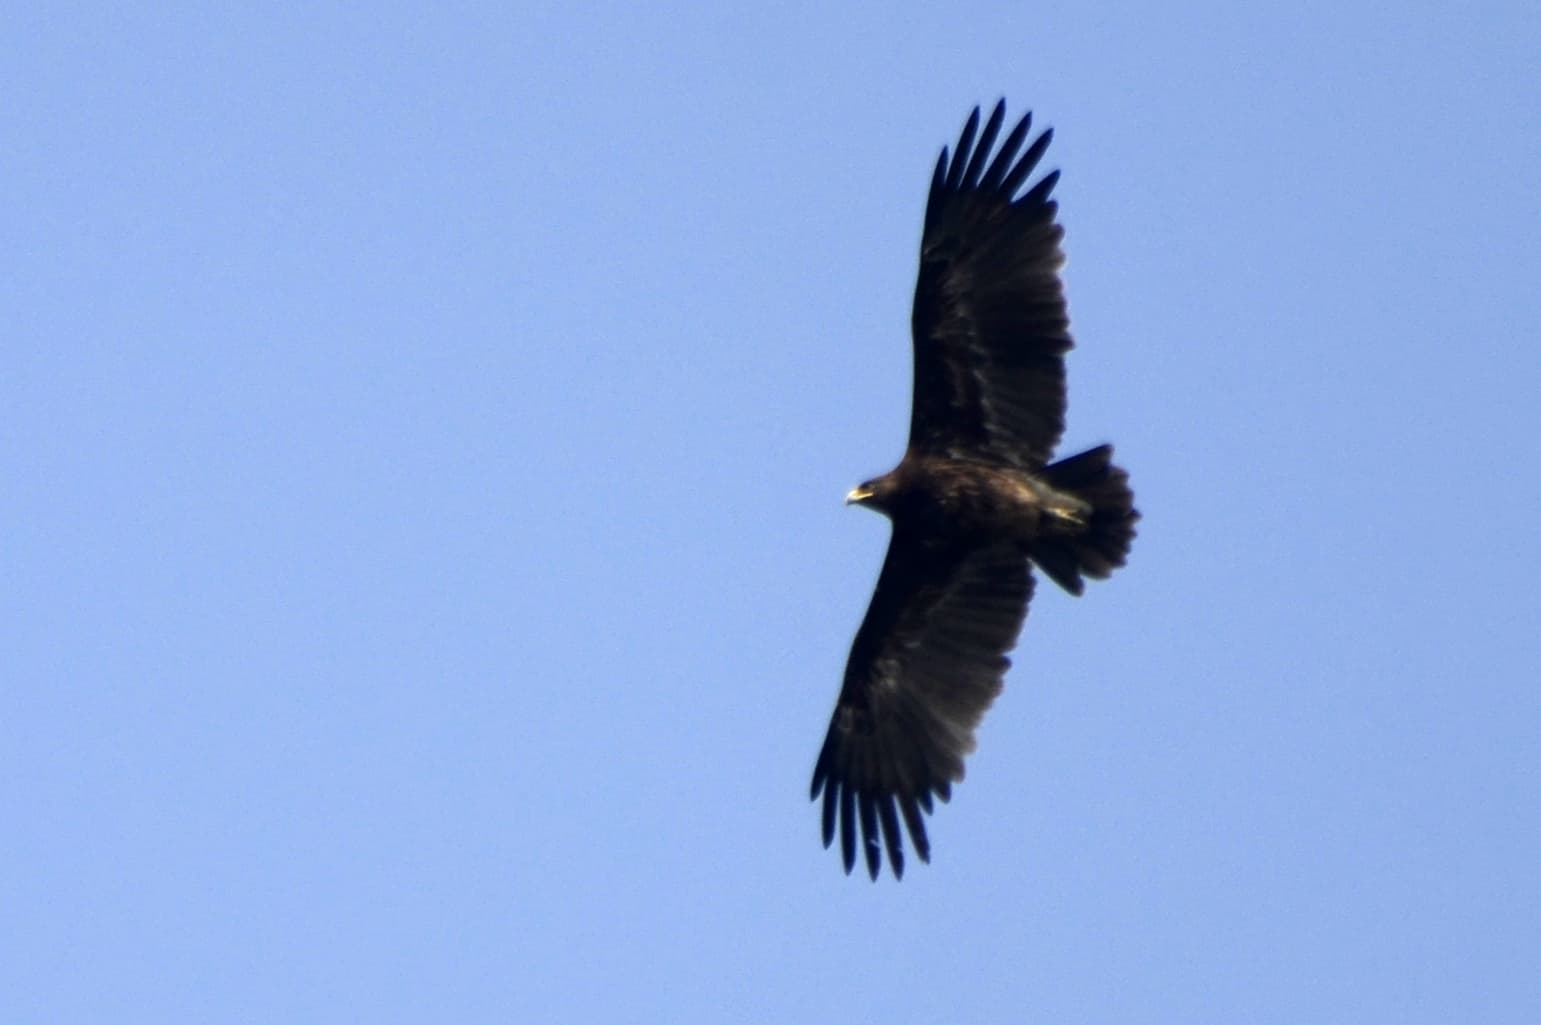 a black Greater spotted eagle with its full wing span with a clear blue sky behind